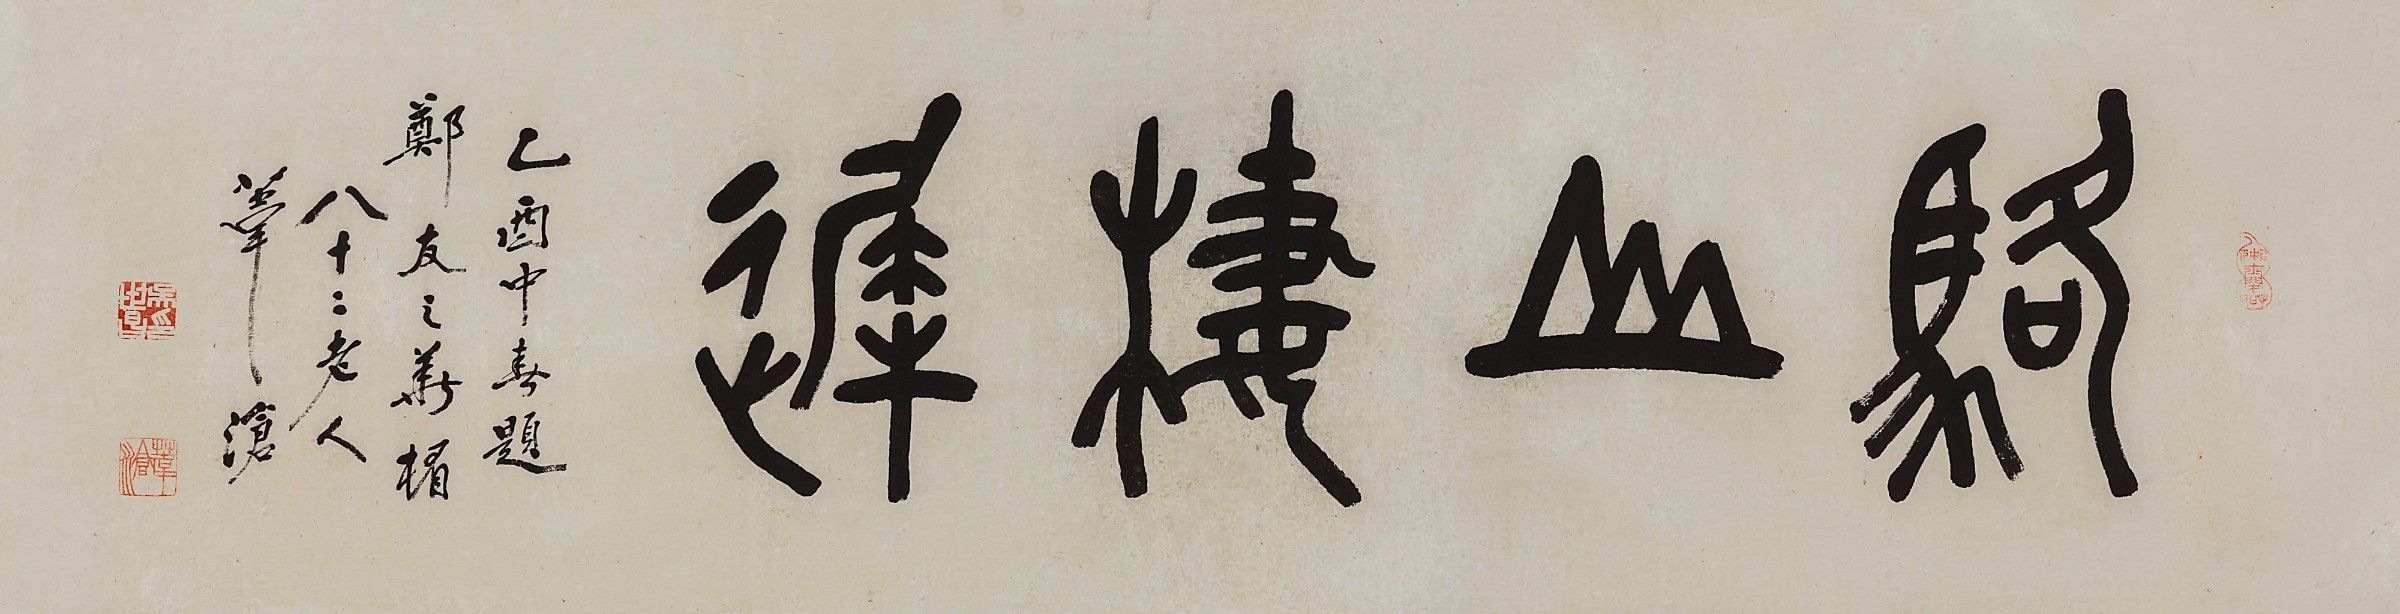 Calligraphy by O Se Chang (1864-1953), Korea's Foremost Calligrapher